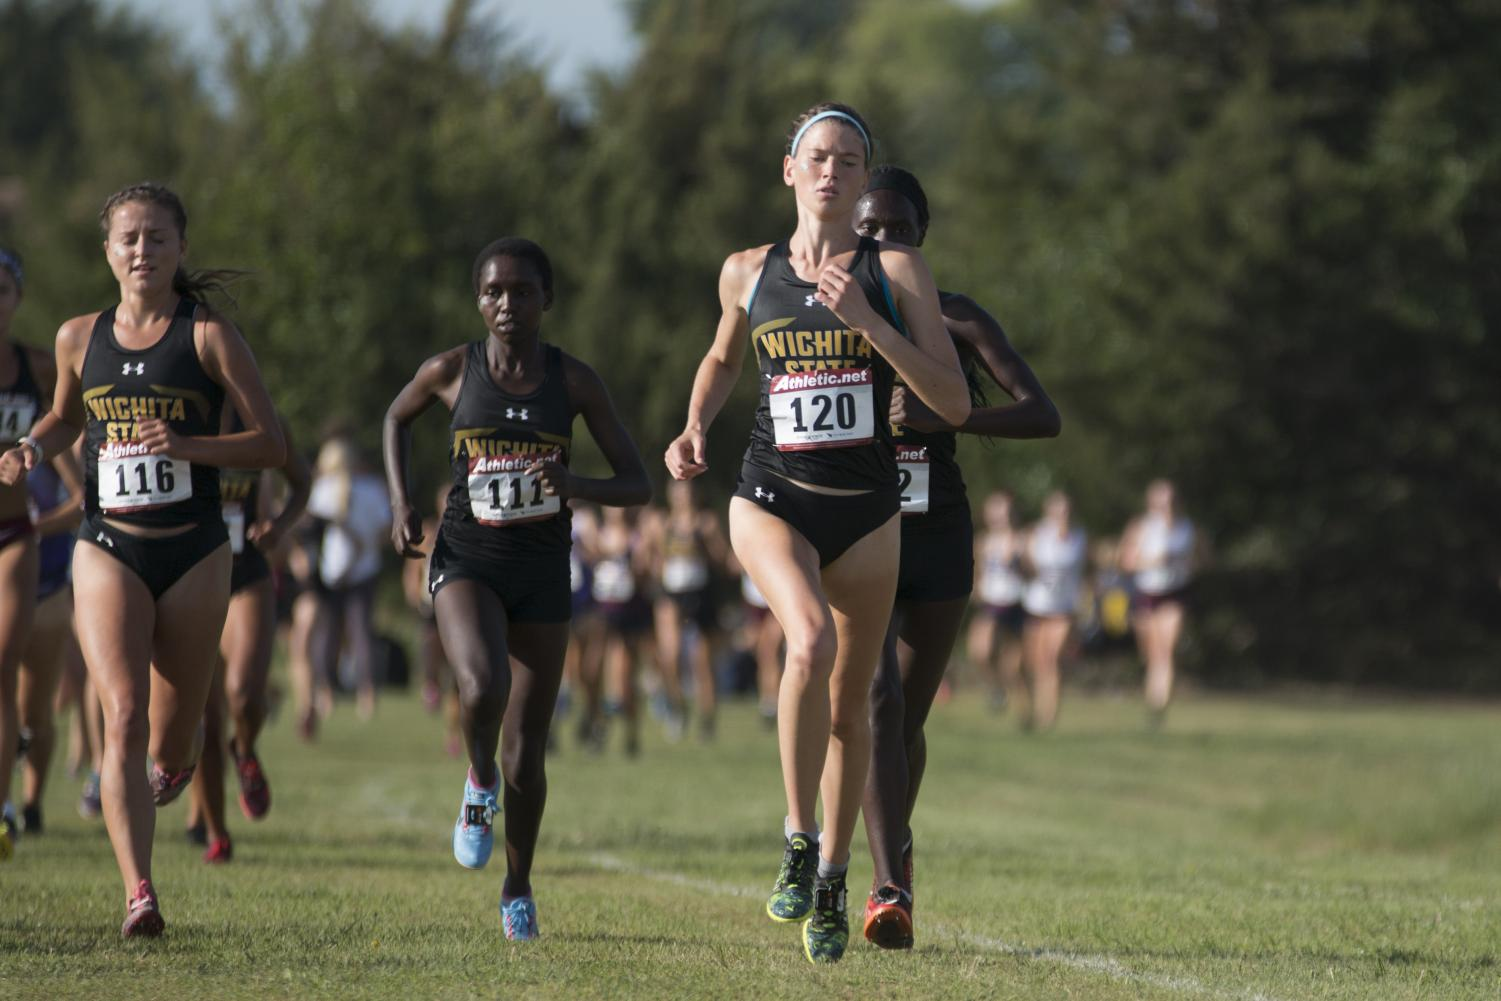 September 1, 2018: Women's Cross Country runners compete in the 4000 M during the J.K. Gold Classic, Saturday, Sept. 1, 2018.